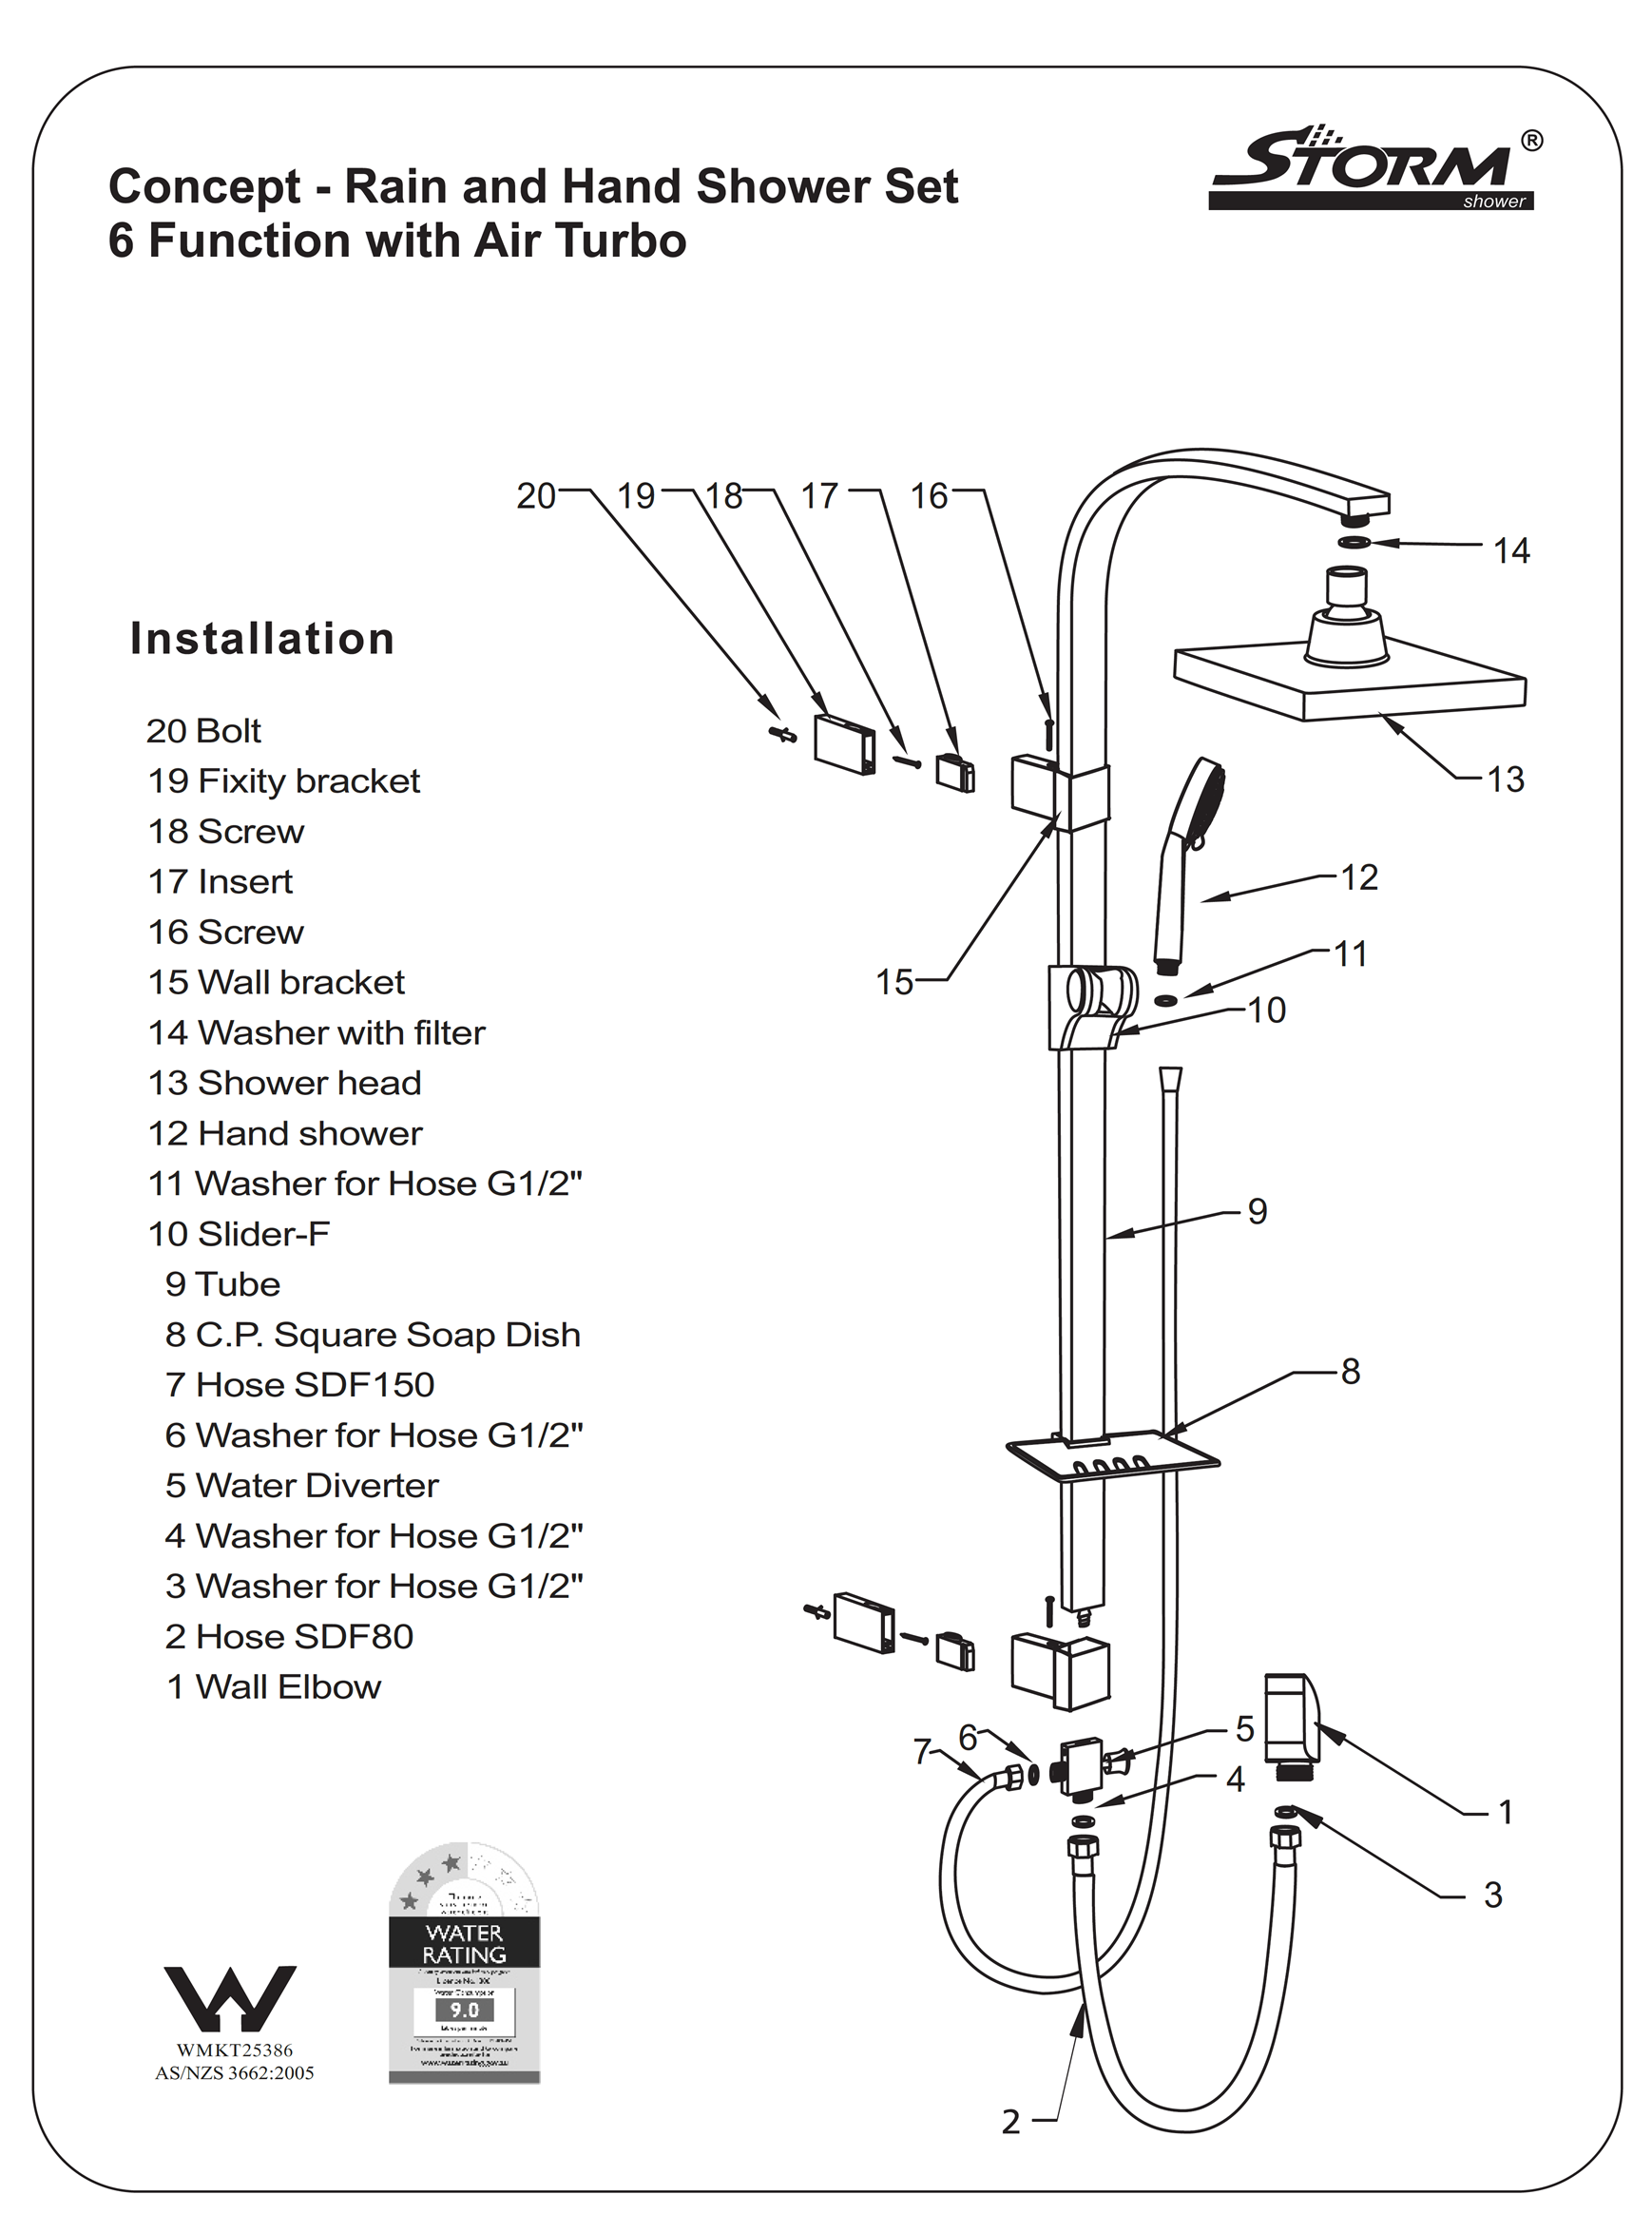 Installing a twin rail shower set